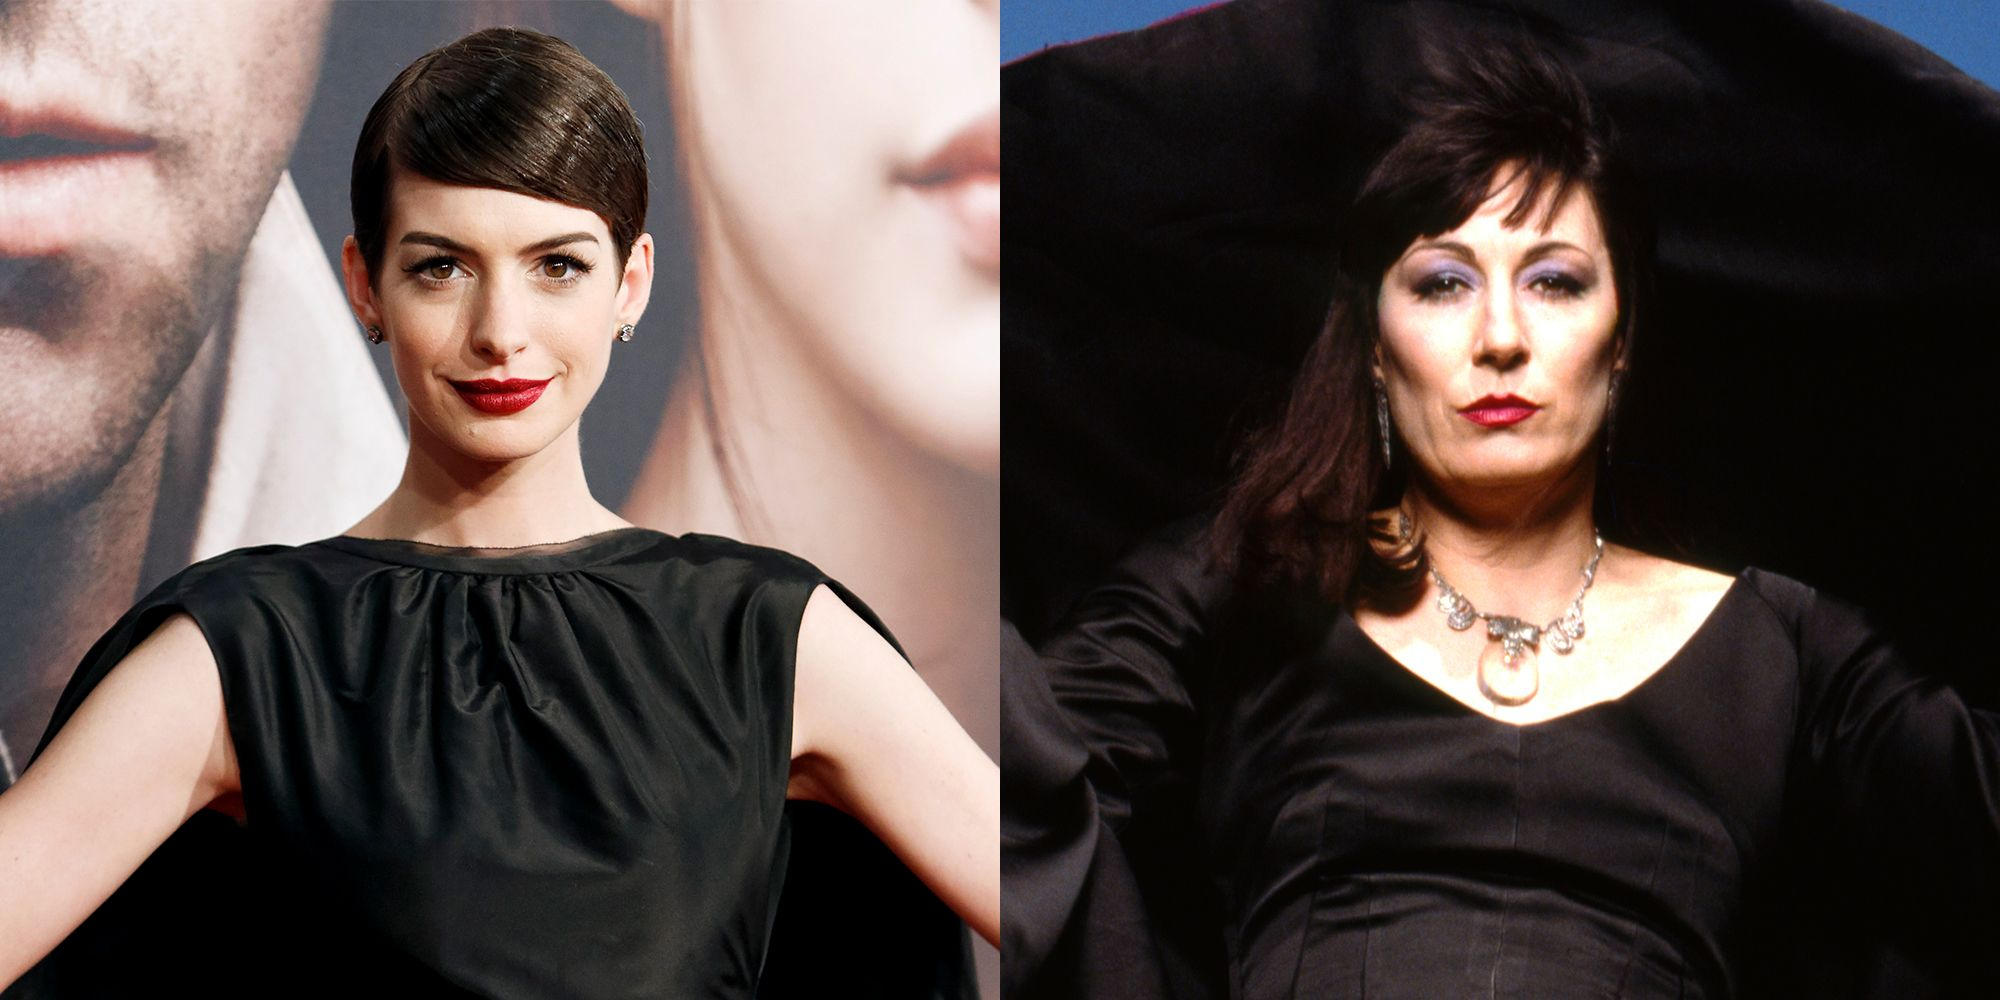 anne hathaway Anjelica Huston the witches roald dahl